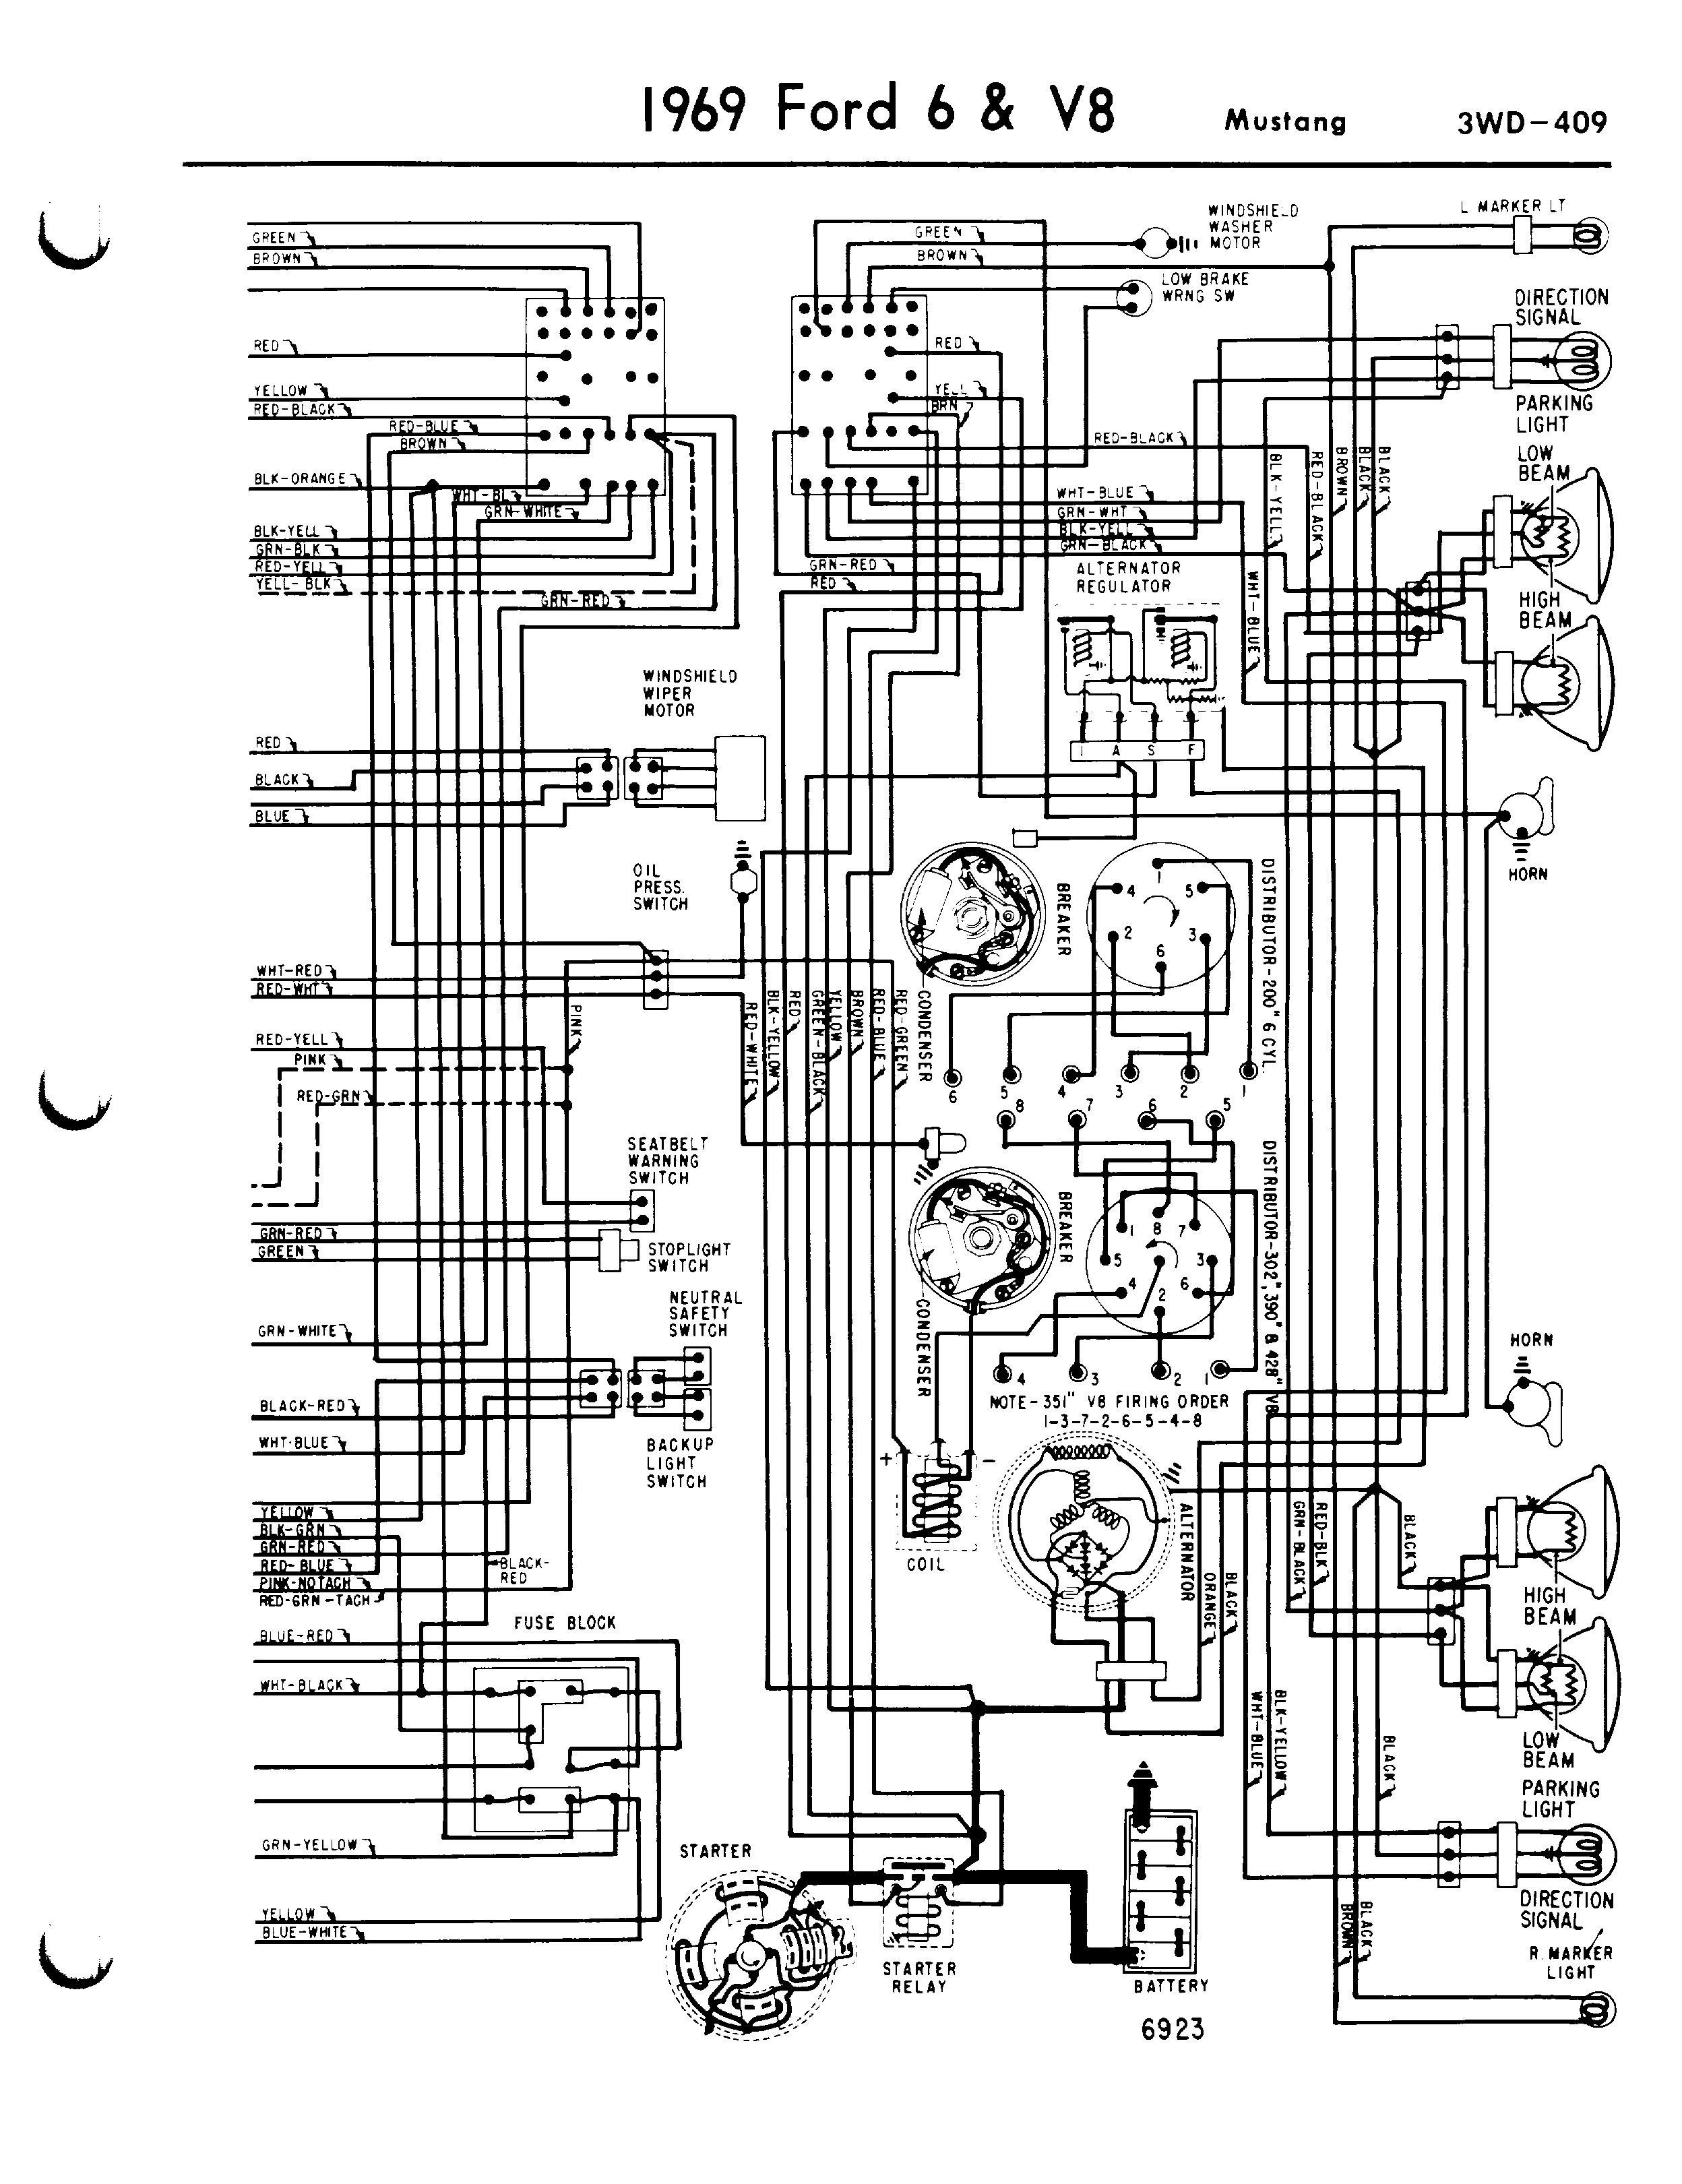 1968 Mustang Turn Signal Wiring Diagram from detoxicrecenze.com